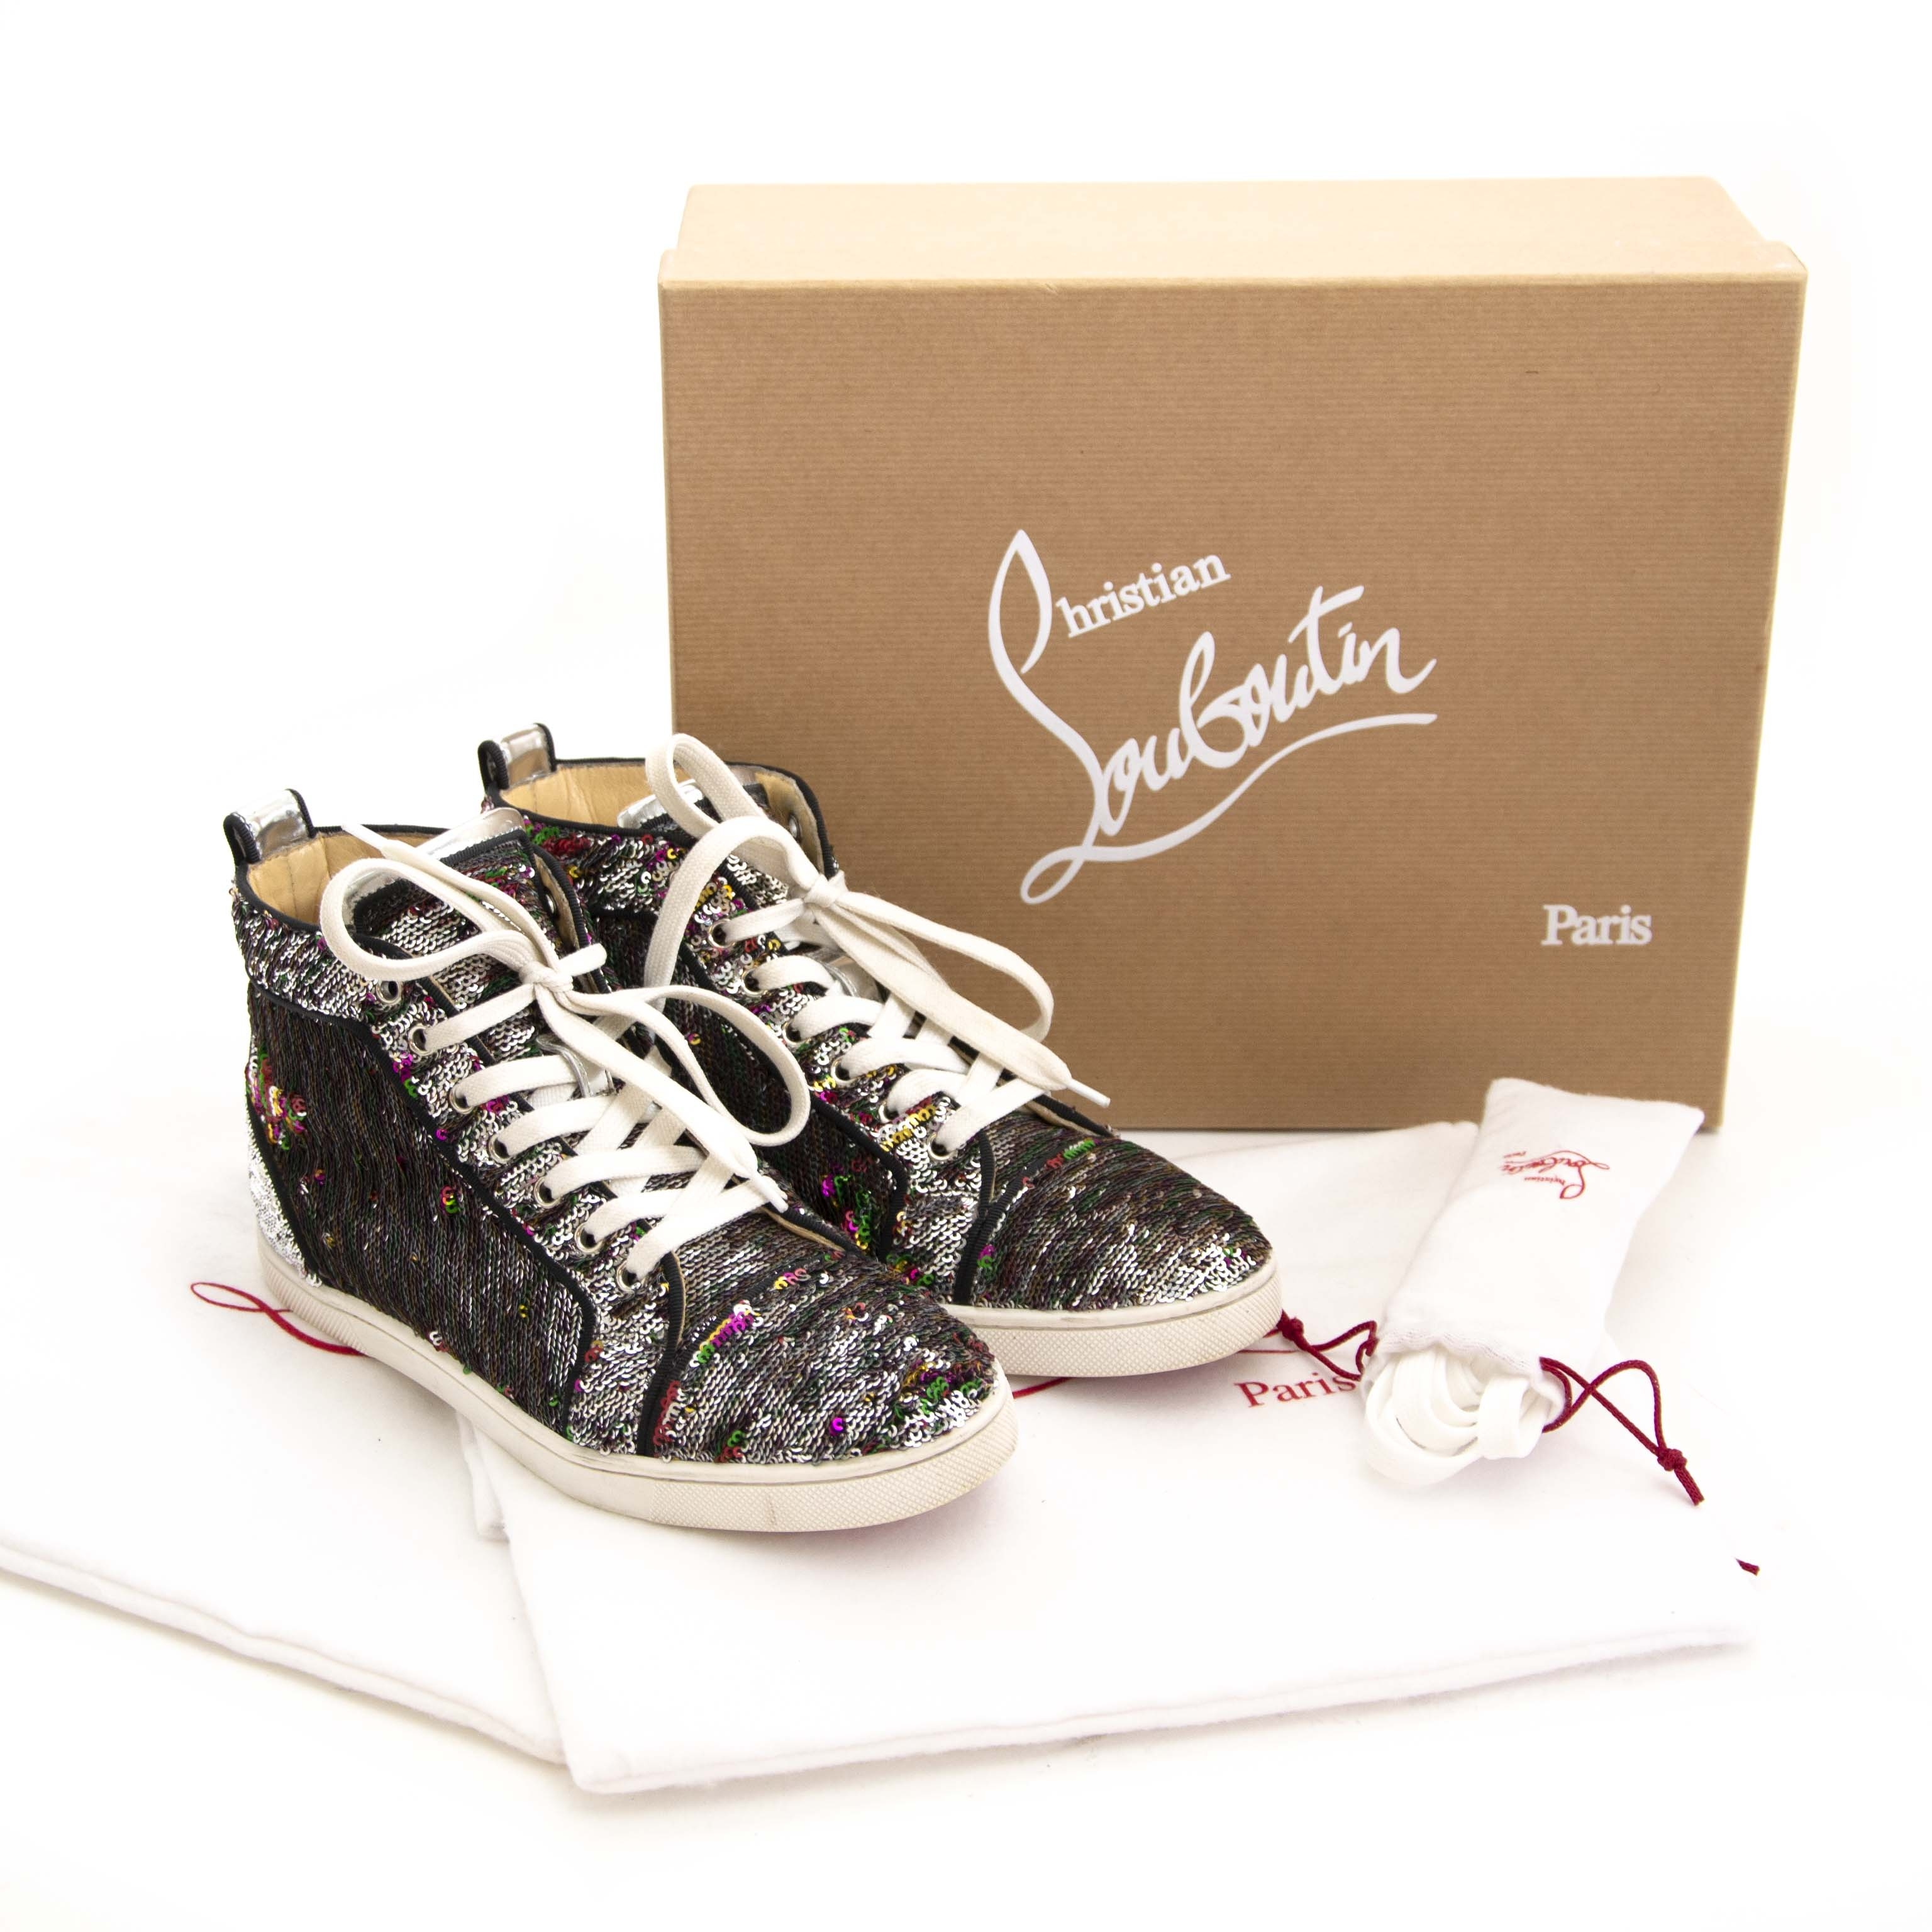 Buy authentic second hand vintage Louboutin Bip Bip Silver Sequin Sneakers at online webshop LabelLOV. Safe and secure shopping. Koop authentieke tweedehands vintage Louboutin Bip Bip Silver Sequin Sneakers bij online webshop.